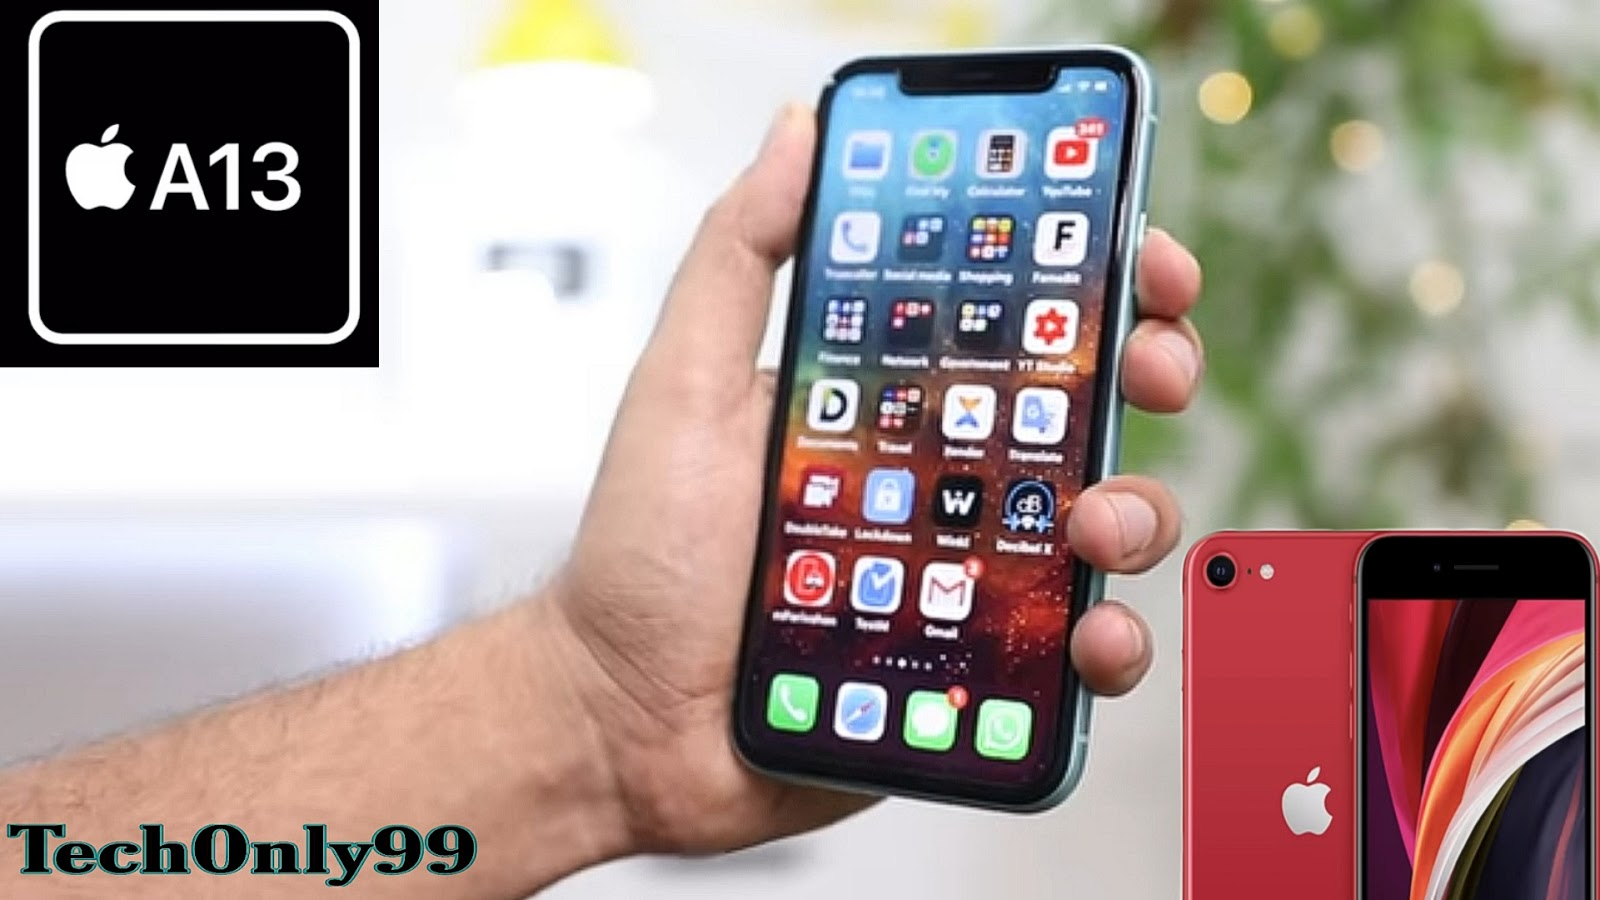 Apple iPhone SE 2020 (iPhone SE 2) Price in India April 2020, Release Date & Specifications